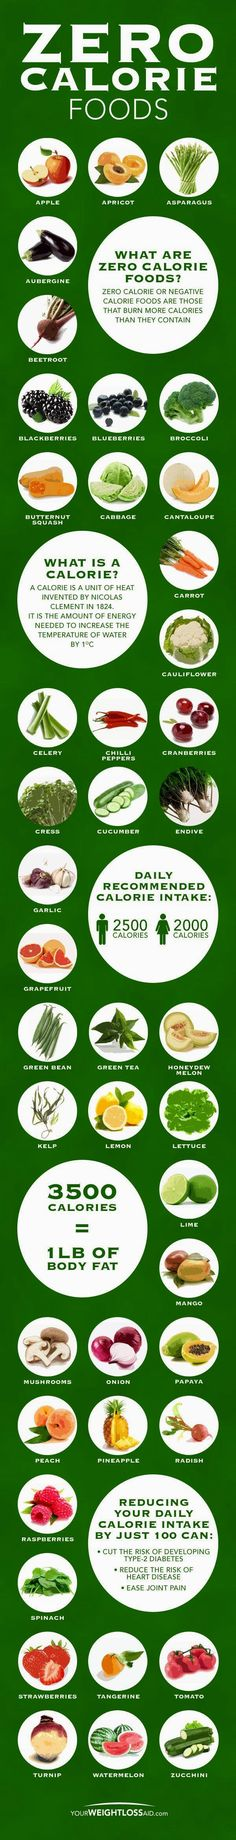 Zero calorie foods a  Zero calorie foods are those that burn more calories than they contain. This infographic breaks them down…